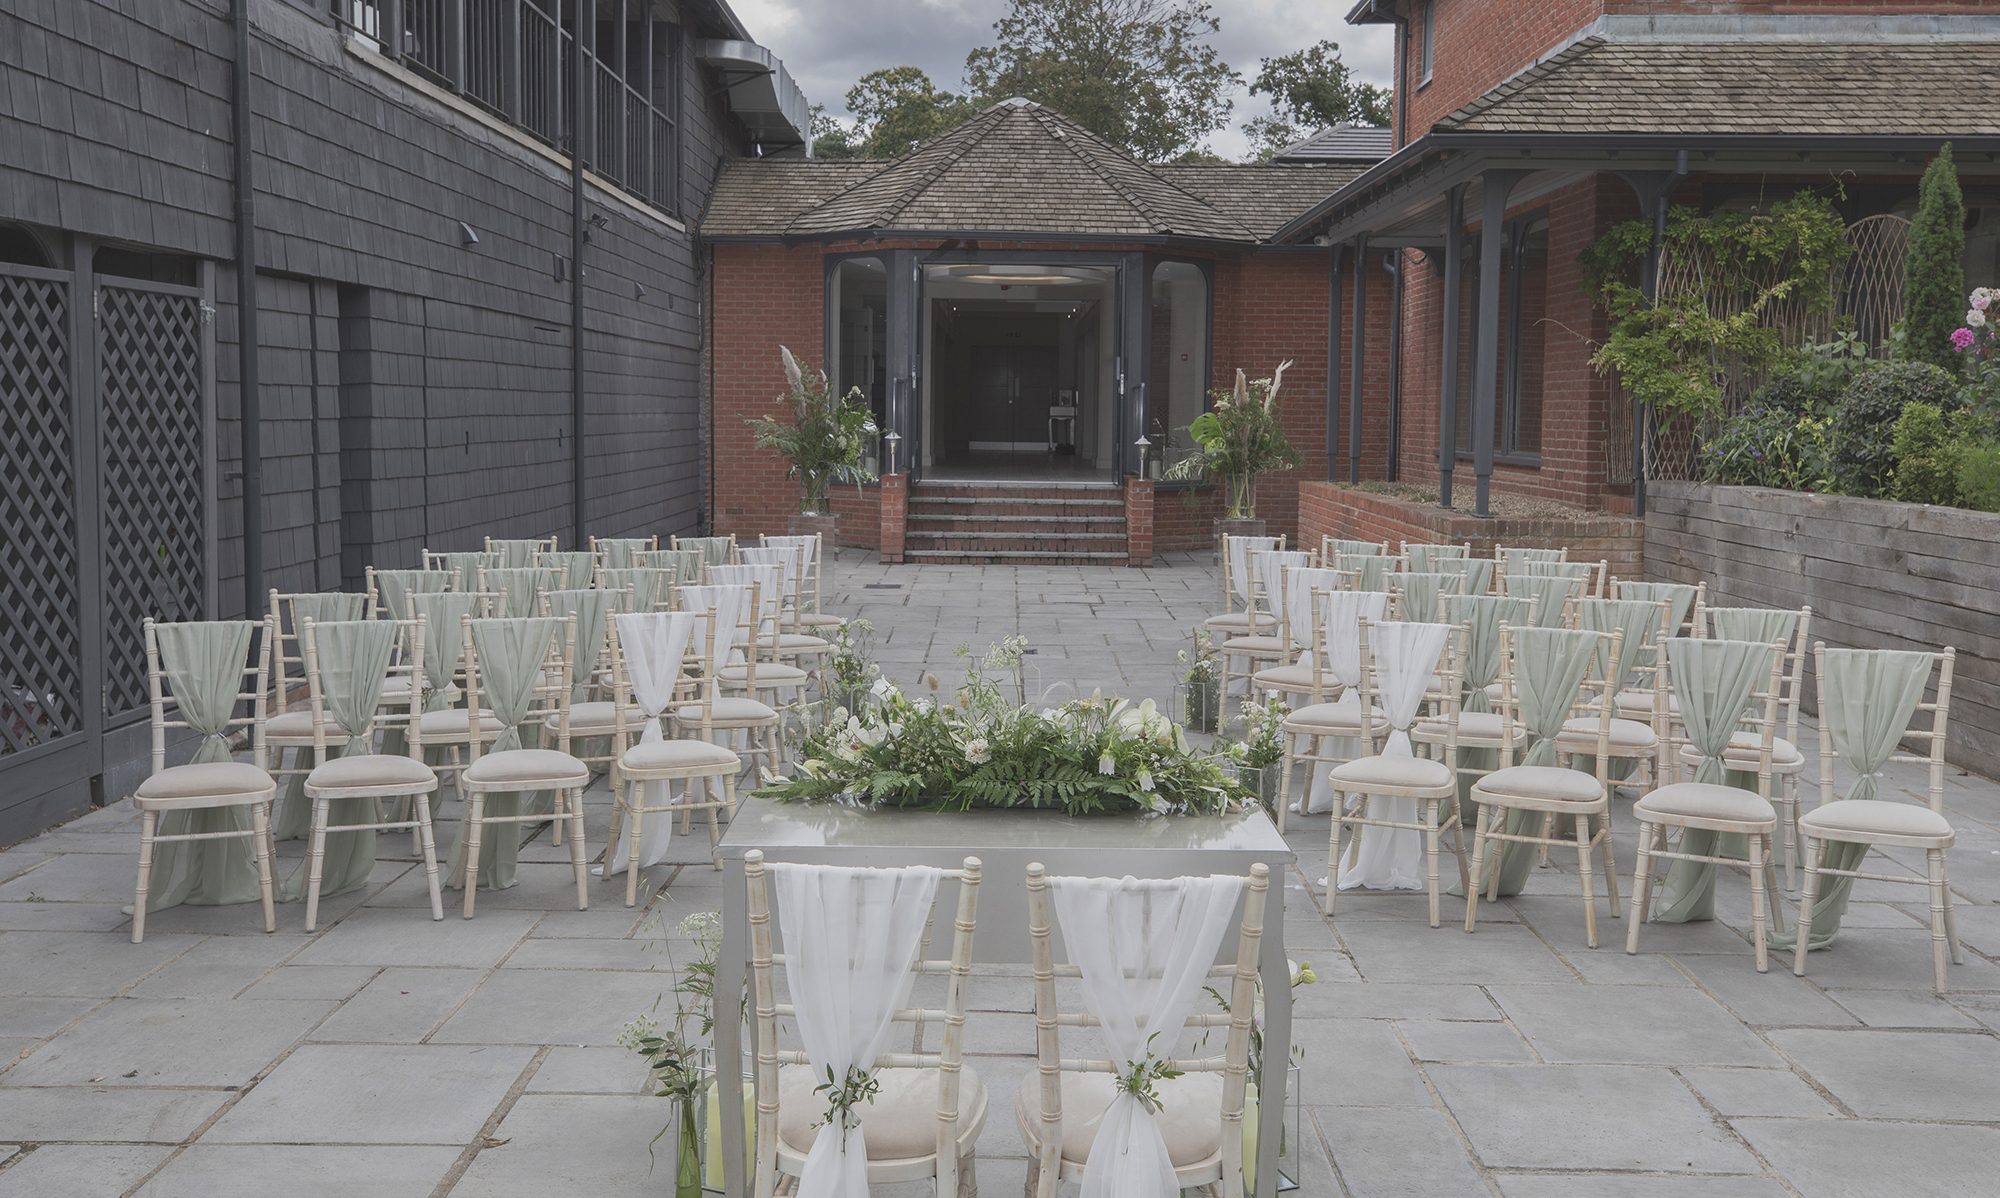 A wonderfully laid outdoor seating area ready for a Civil Marriage Ceremony at All Saints Hotel, Bury St Edmunds